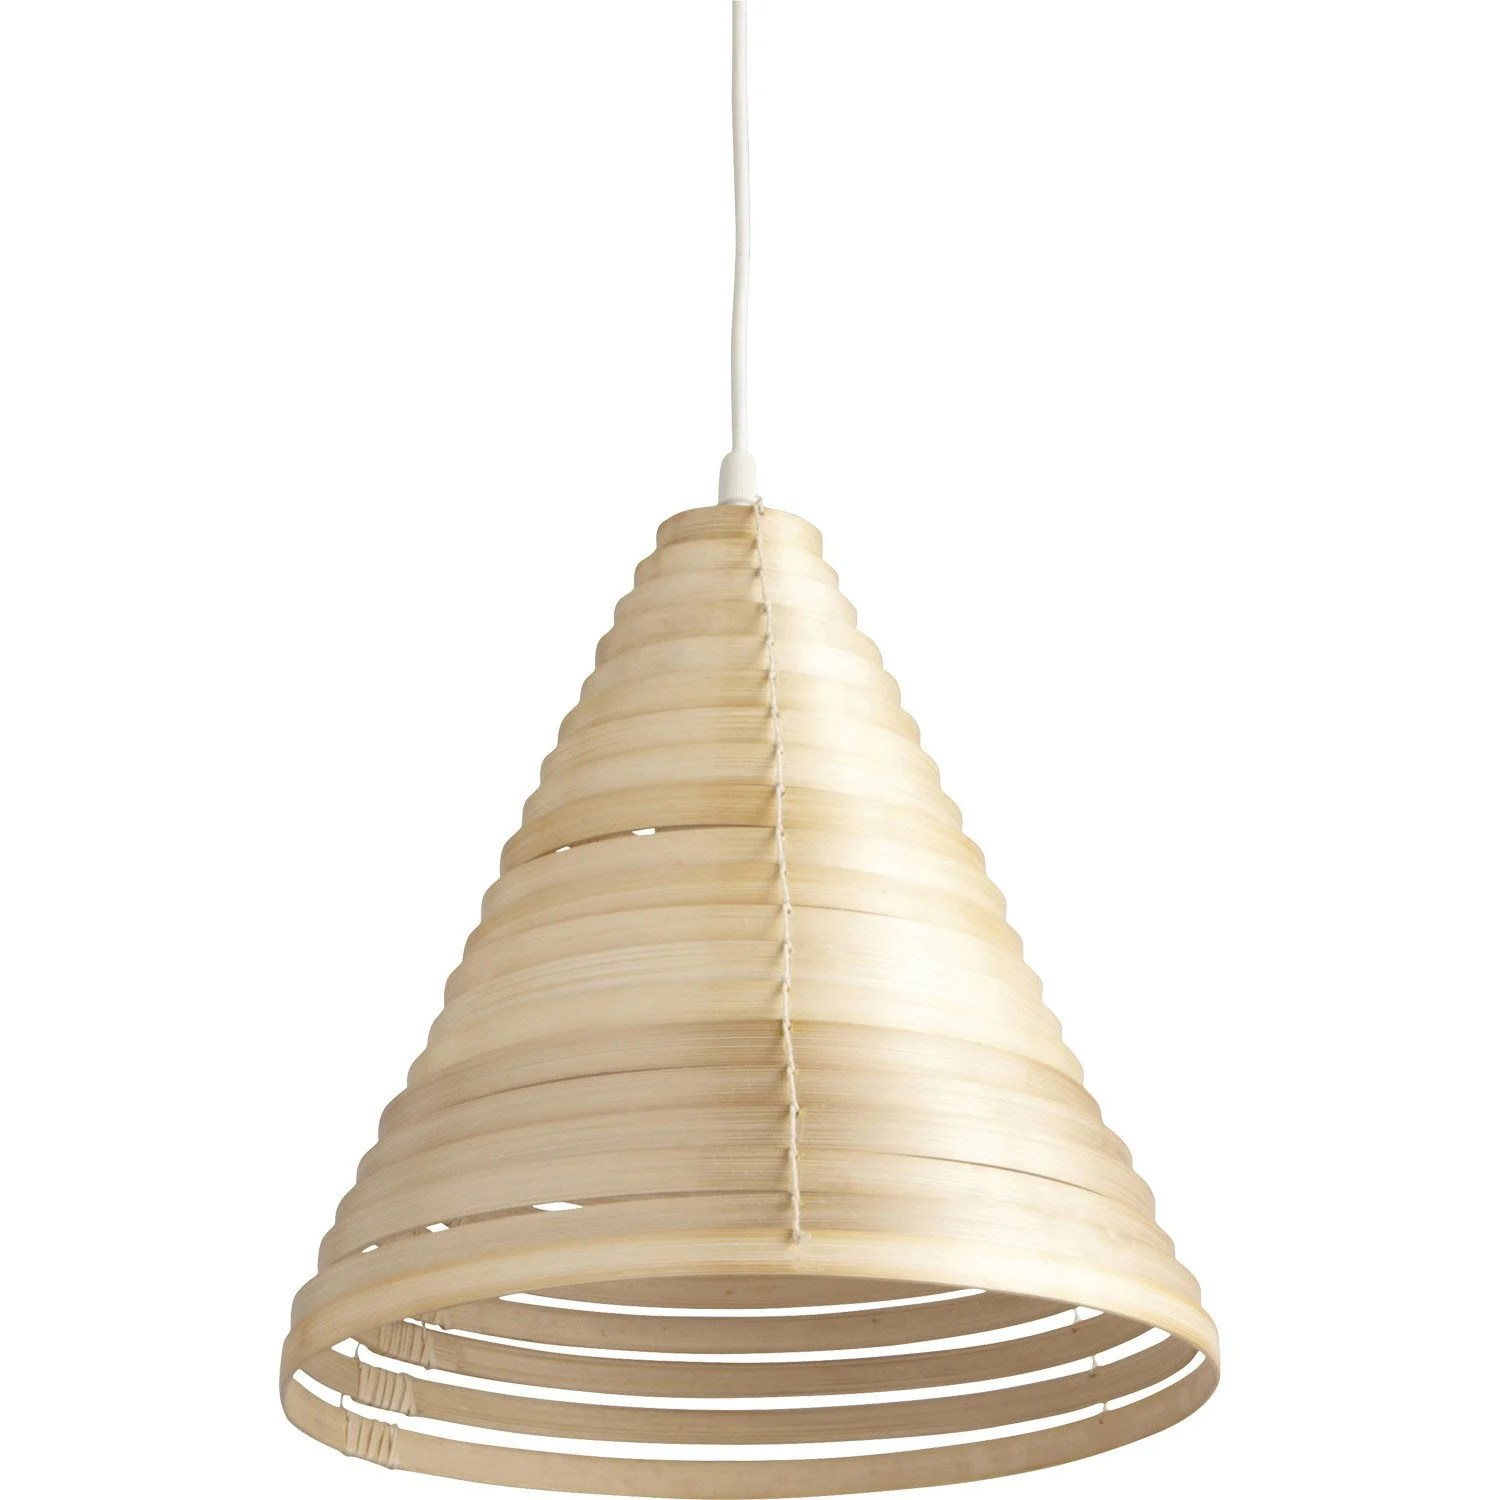 Suspension Bambou Leroy Merlin Suspension Nature Shosan Bambou Naturel 1 X 60 W Inspire